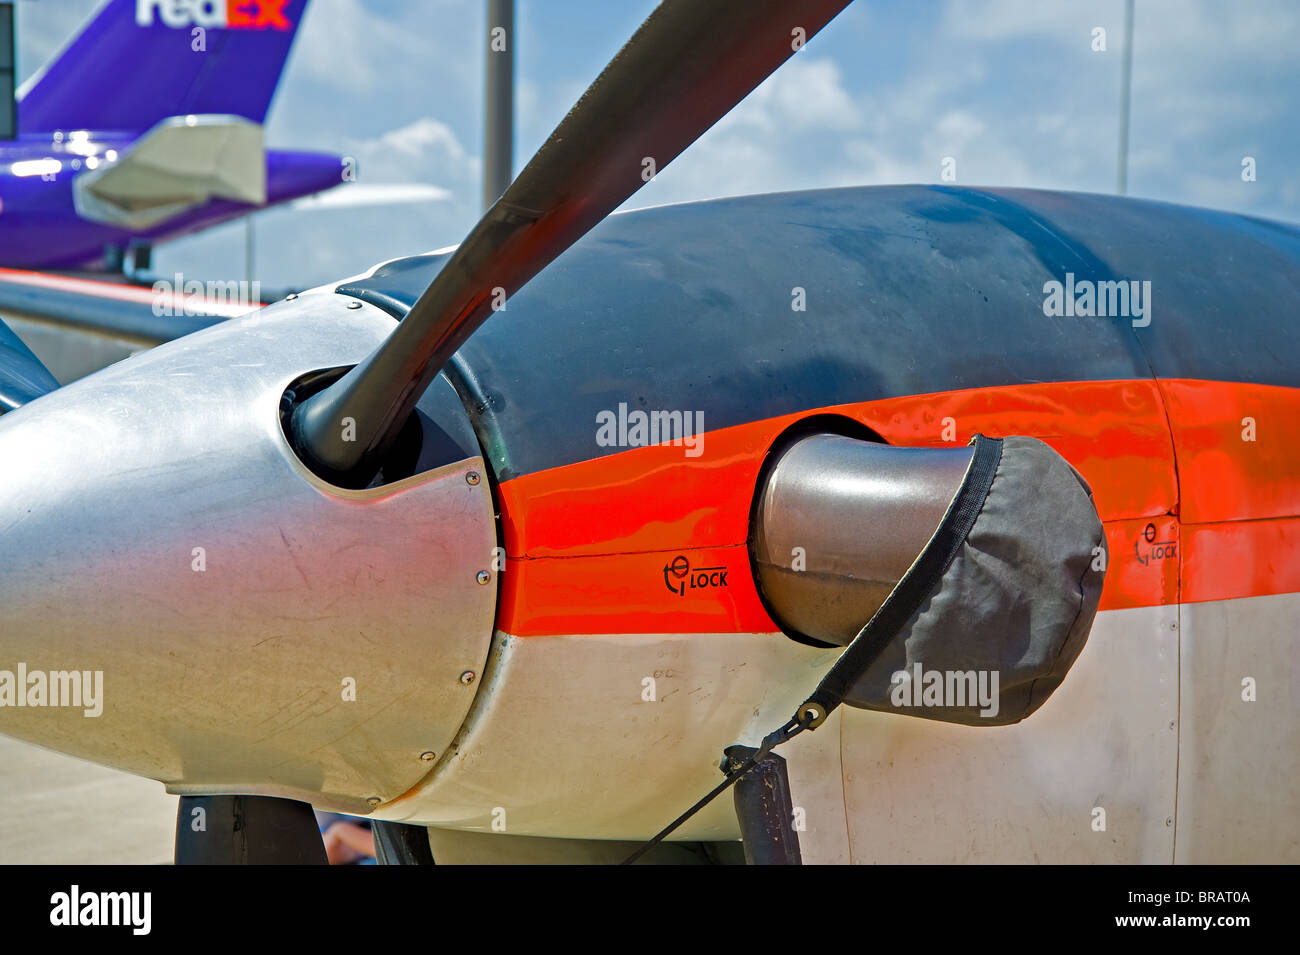 T-6 T6 US Air Force propeller aircraft for basic pilot training - Stock Image